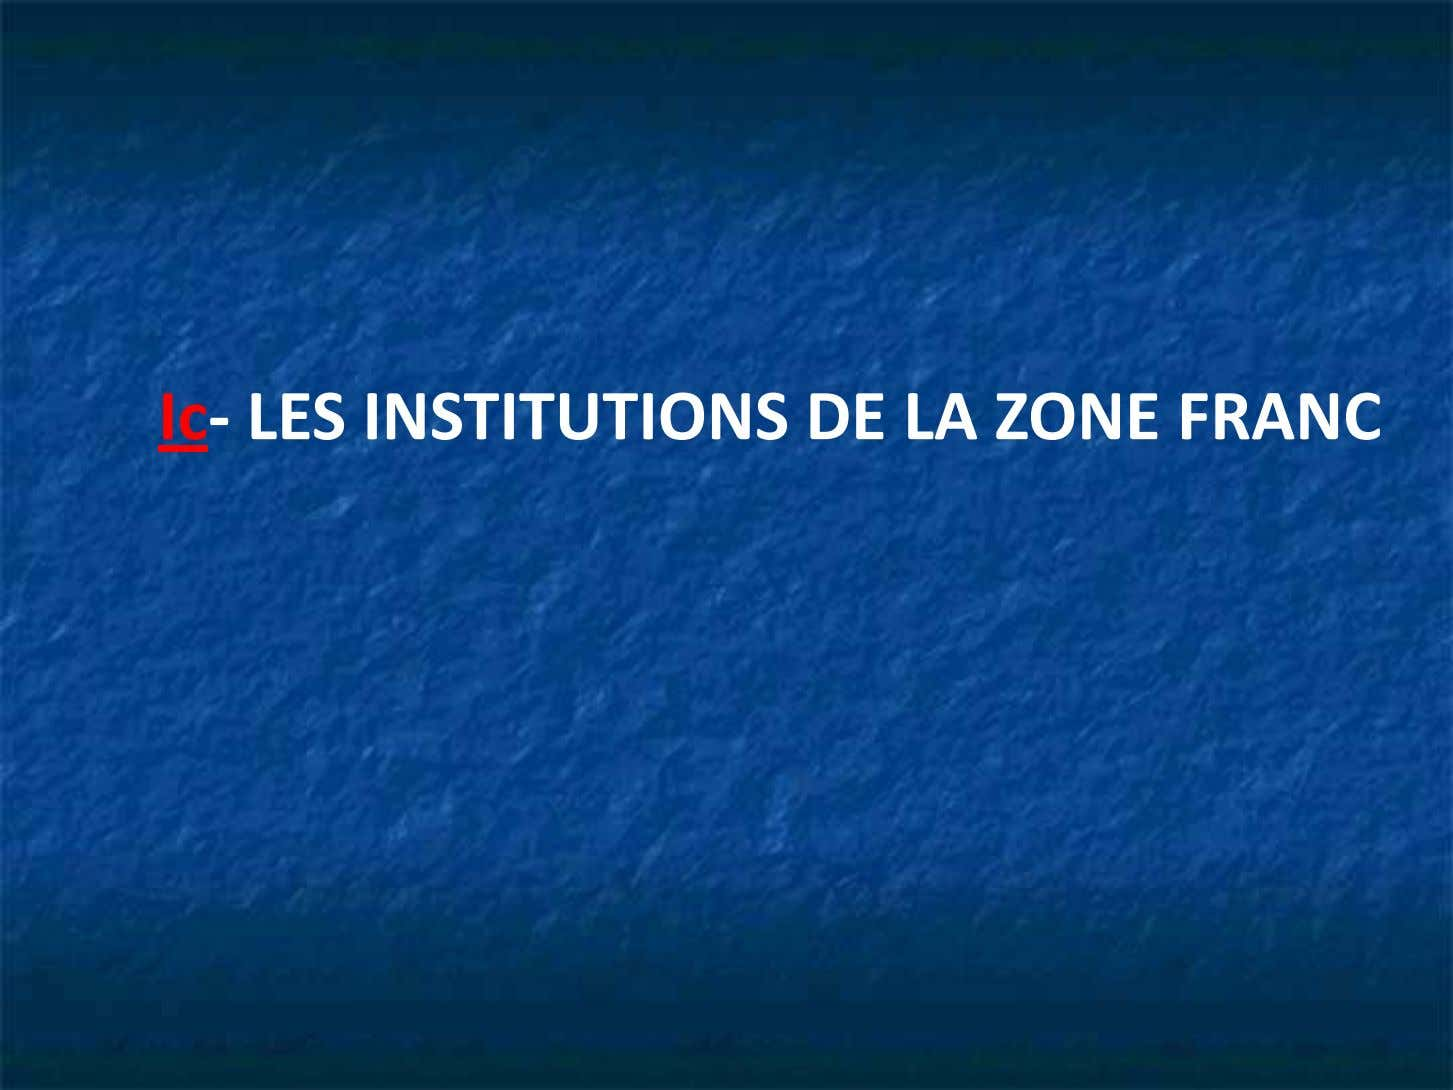 Ic- LES INSTITUTIONS DE LA ZONE FRANC